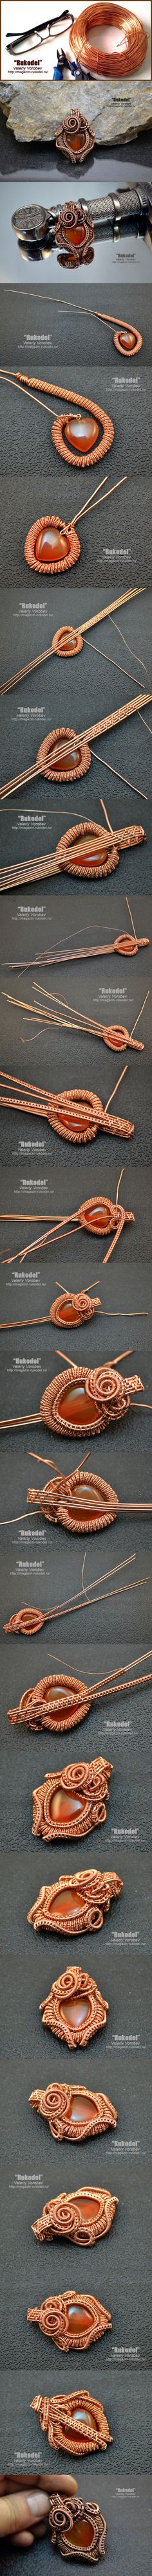 Suspension of copper wire on Anatolyevich. | Crafts